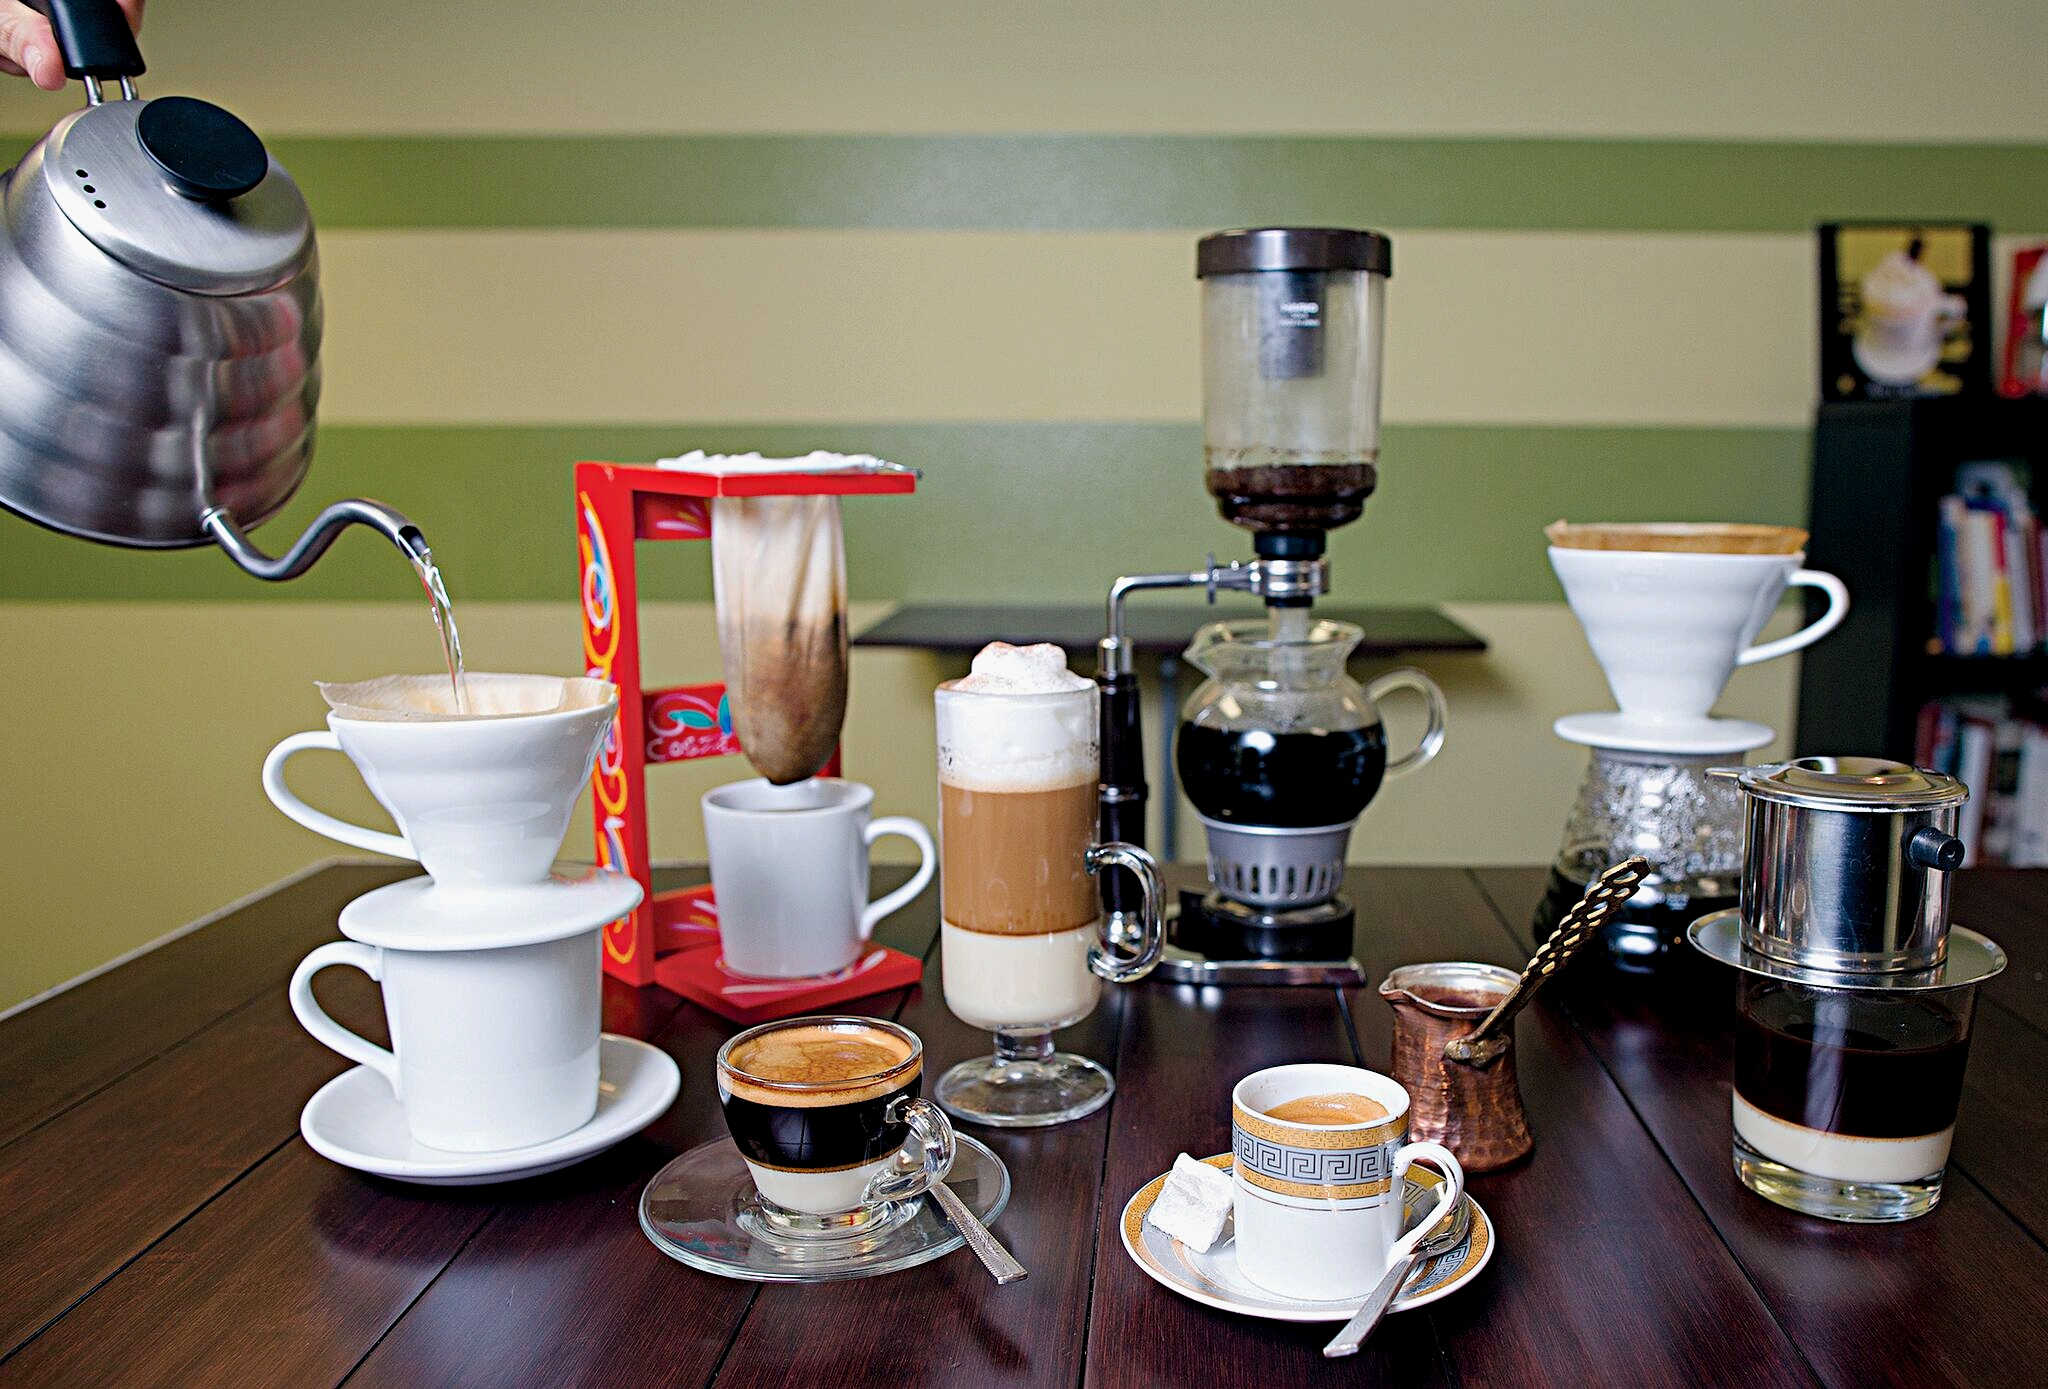 From Turky to Japan, you can only find this variety of coffees at KIWI. No need to travel around the world, just come to Avon.